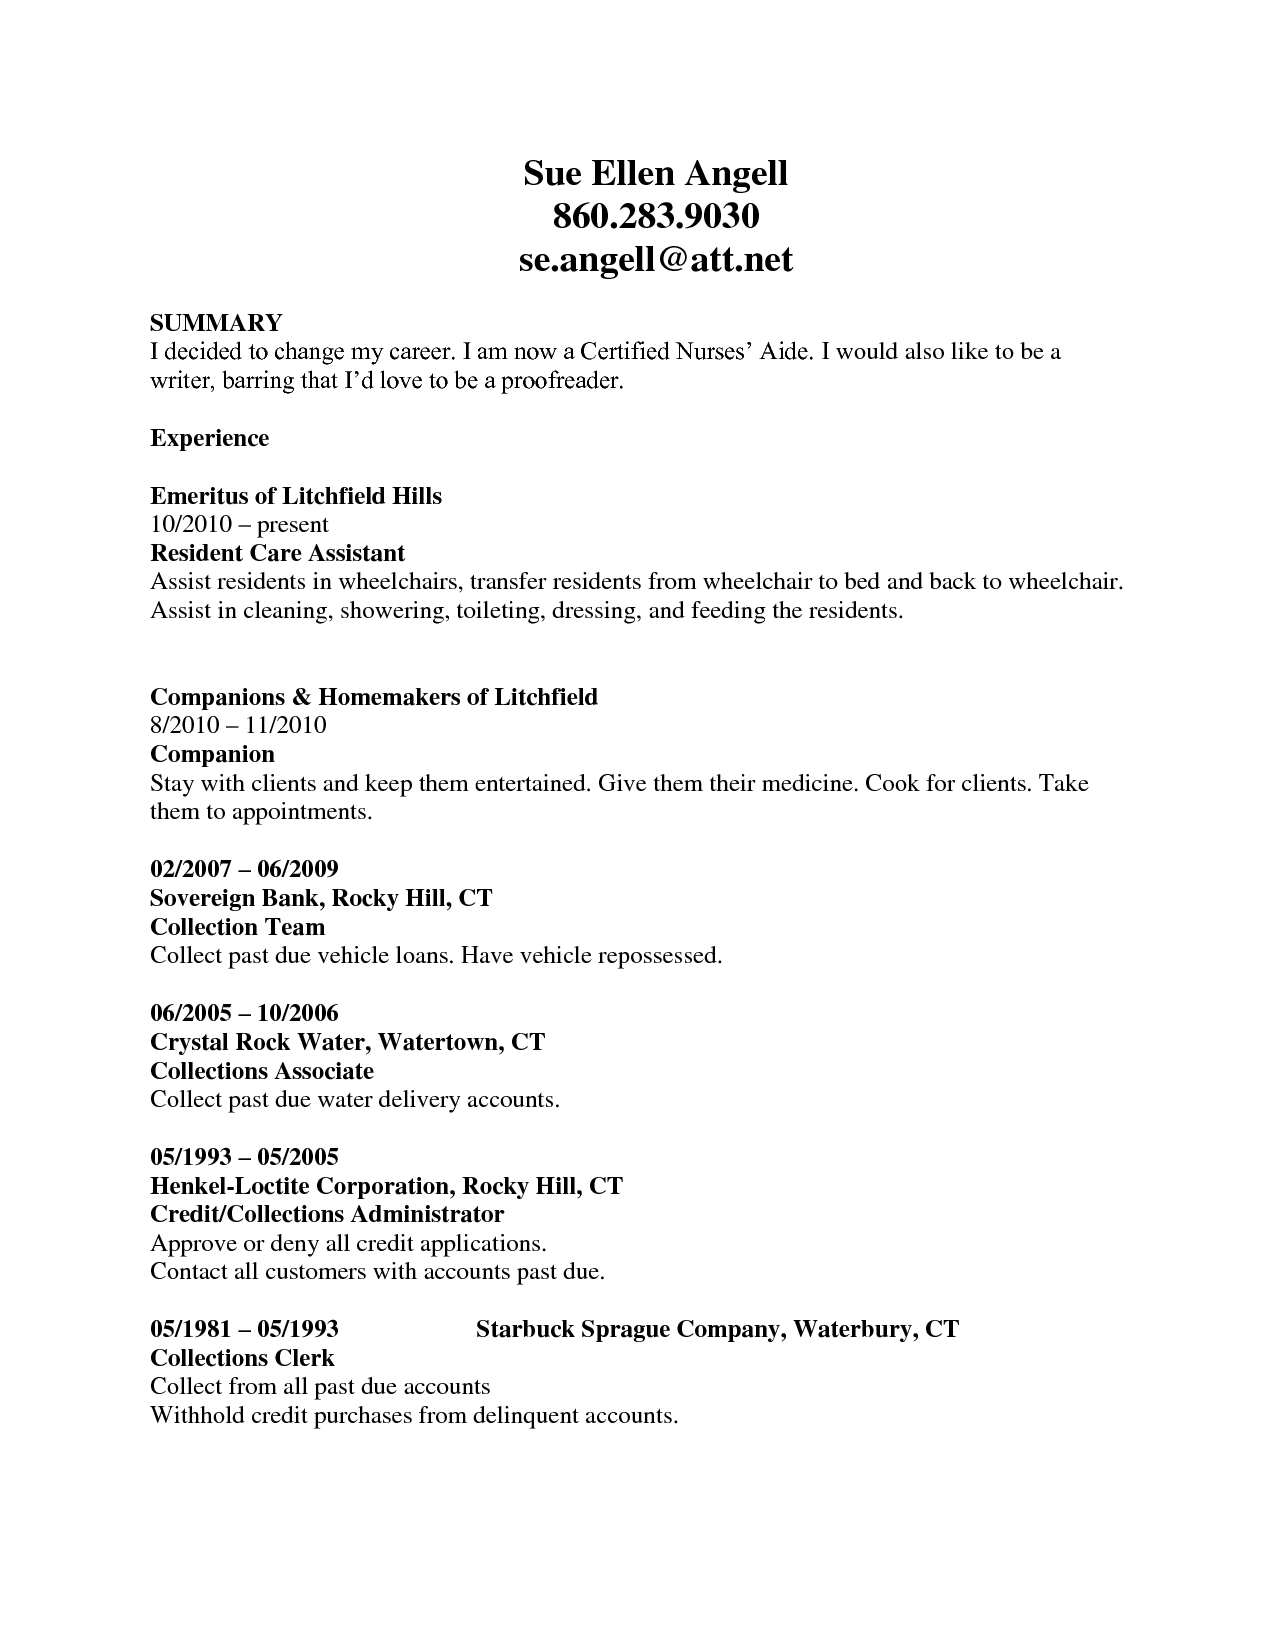 cna resume example click to zoom - Sample Certified Nursing Assistant Resume